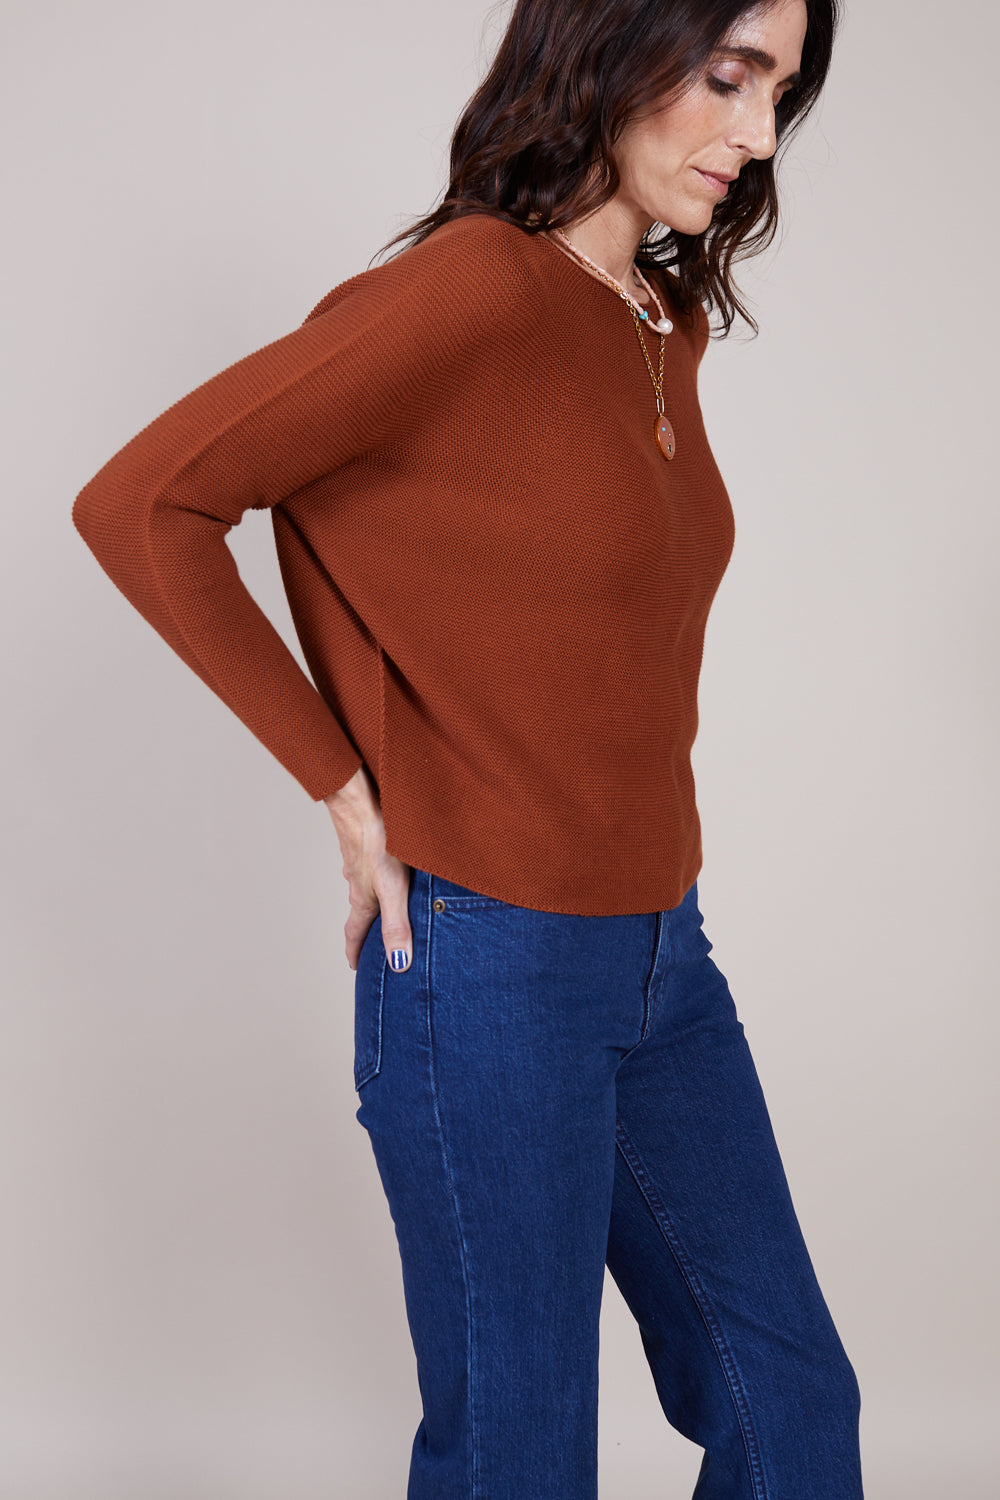 Kain Long Sleeve Shirt in Chestnut